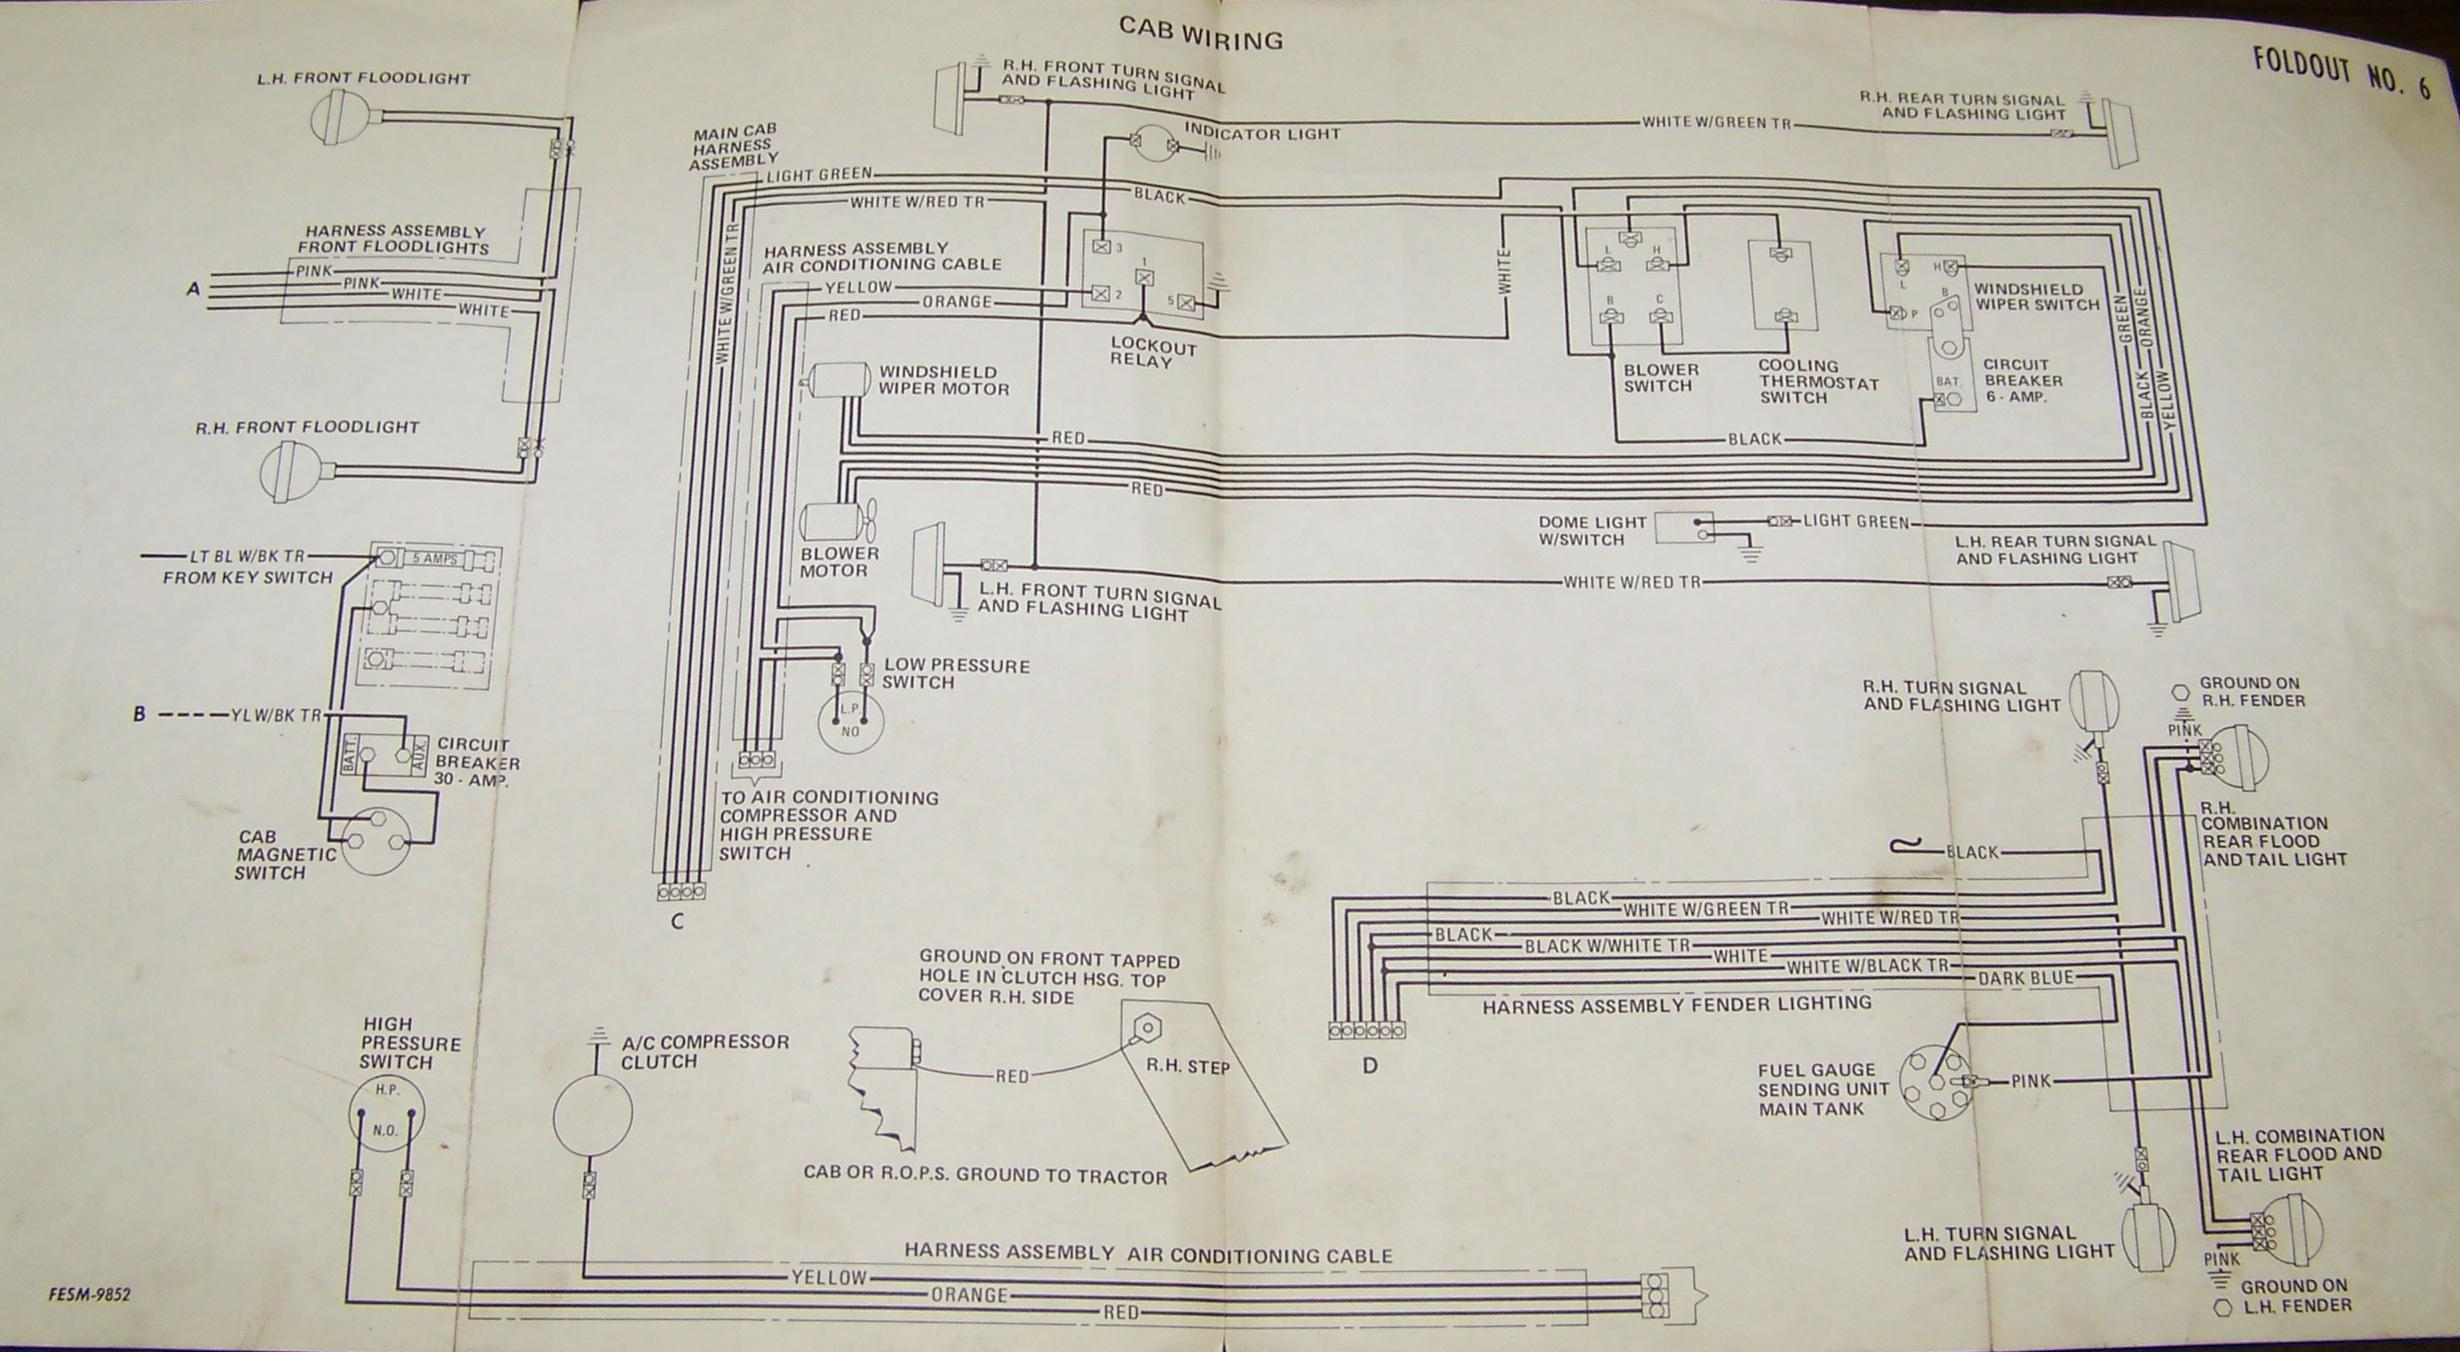 carter gruenewald co inc ih farmall tractor electrical wiring rh cngco com 766 farmall tractor wiring diagram 140 farmall tractor wiring diagram